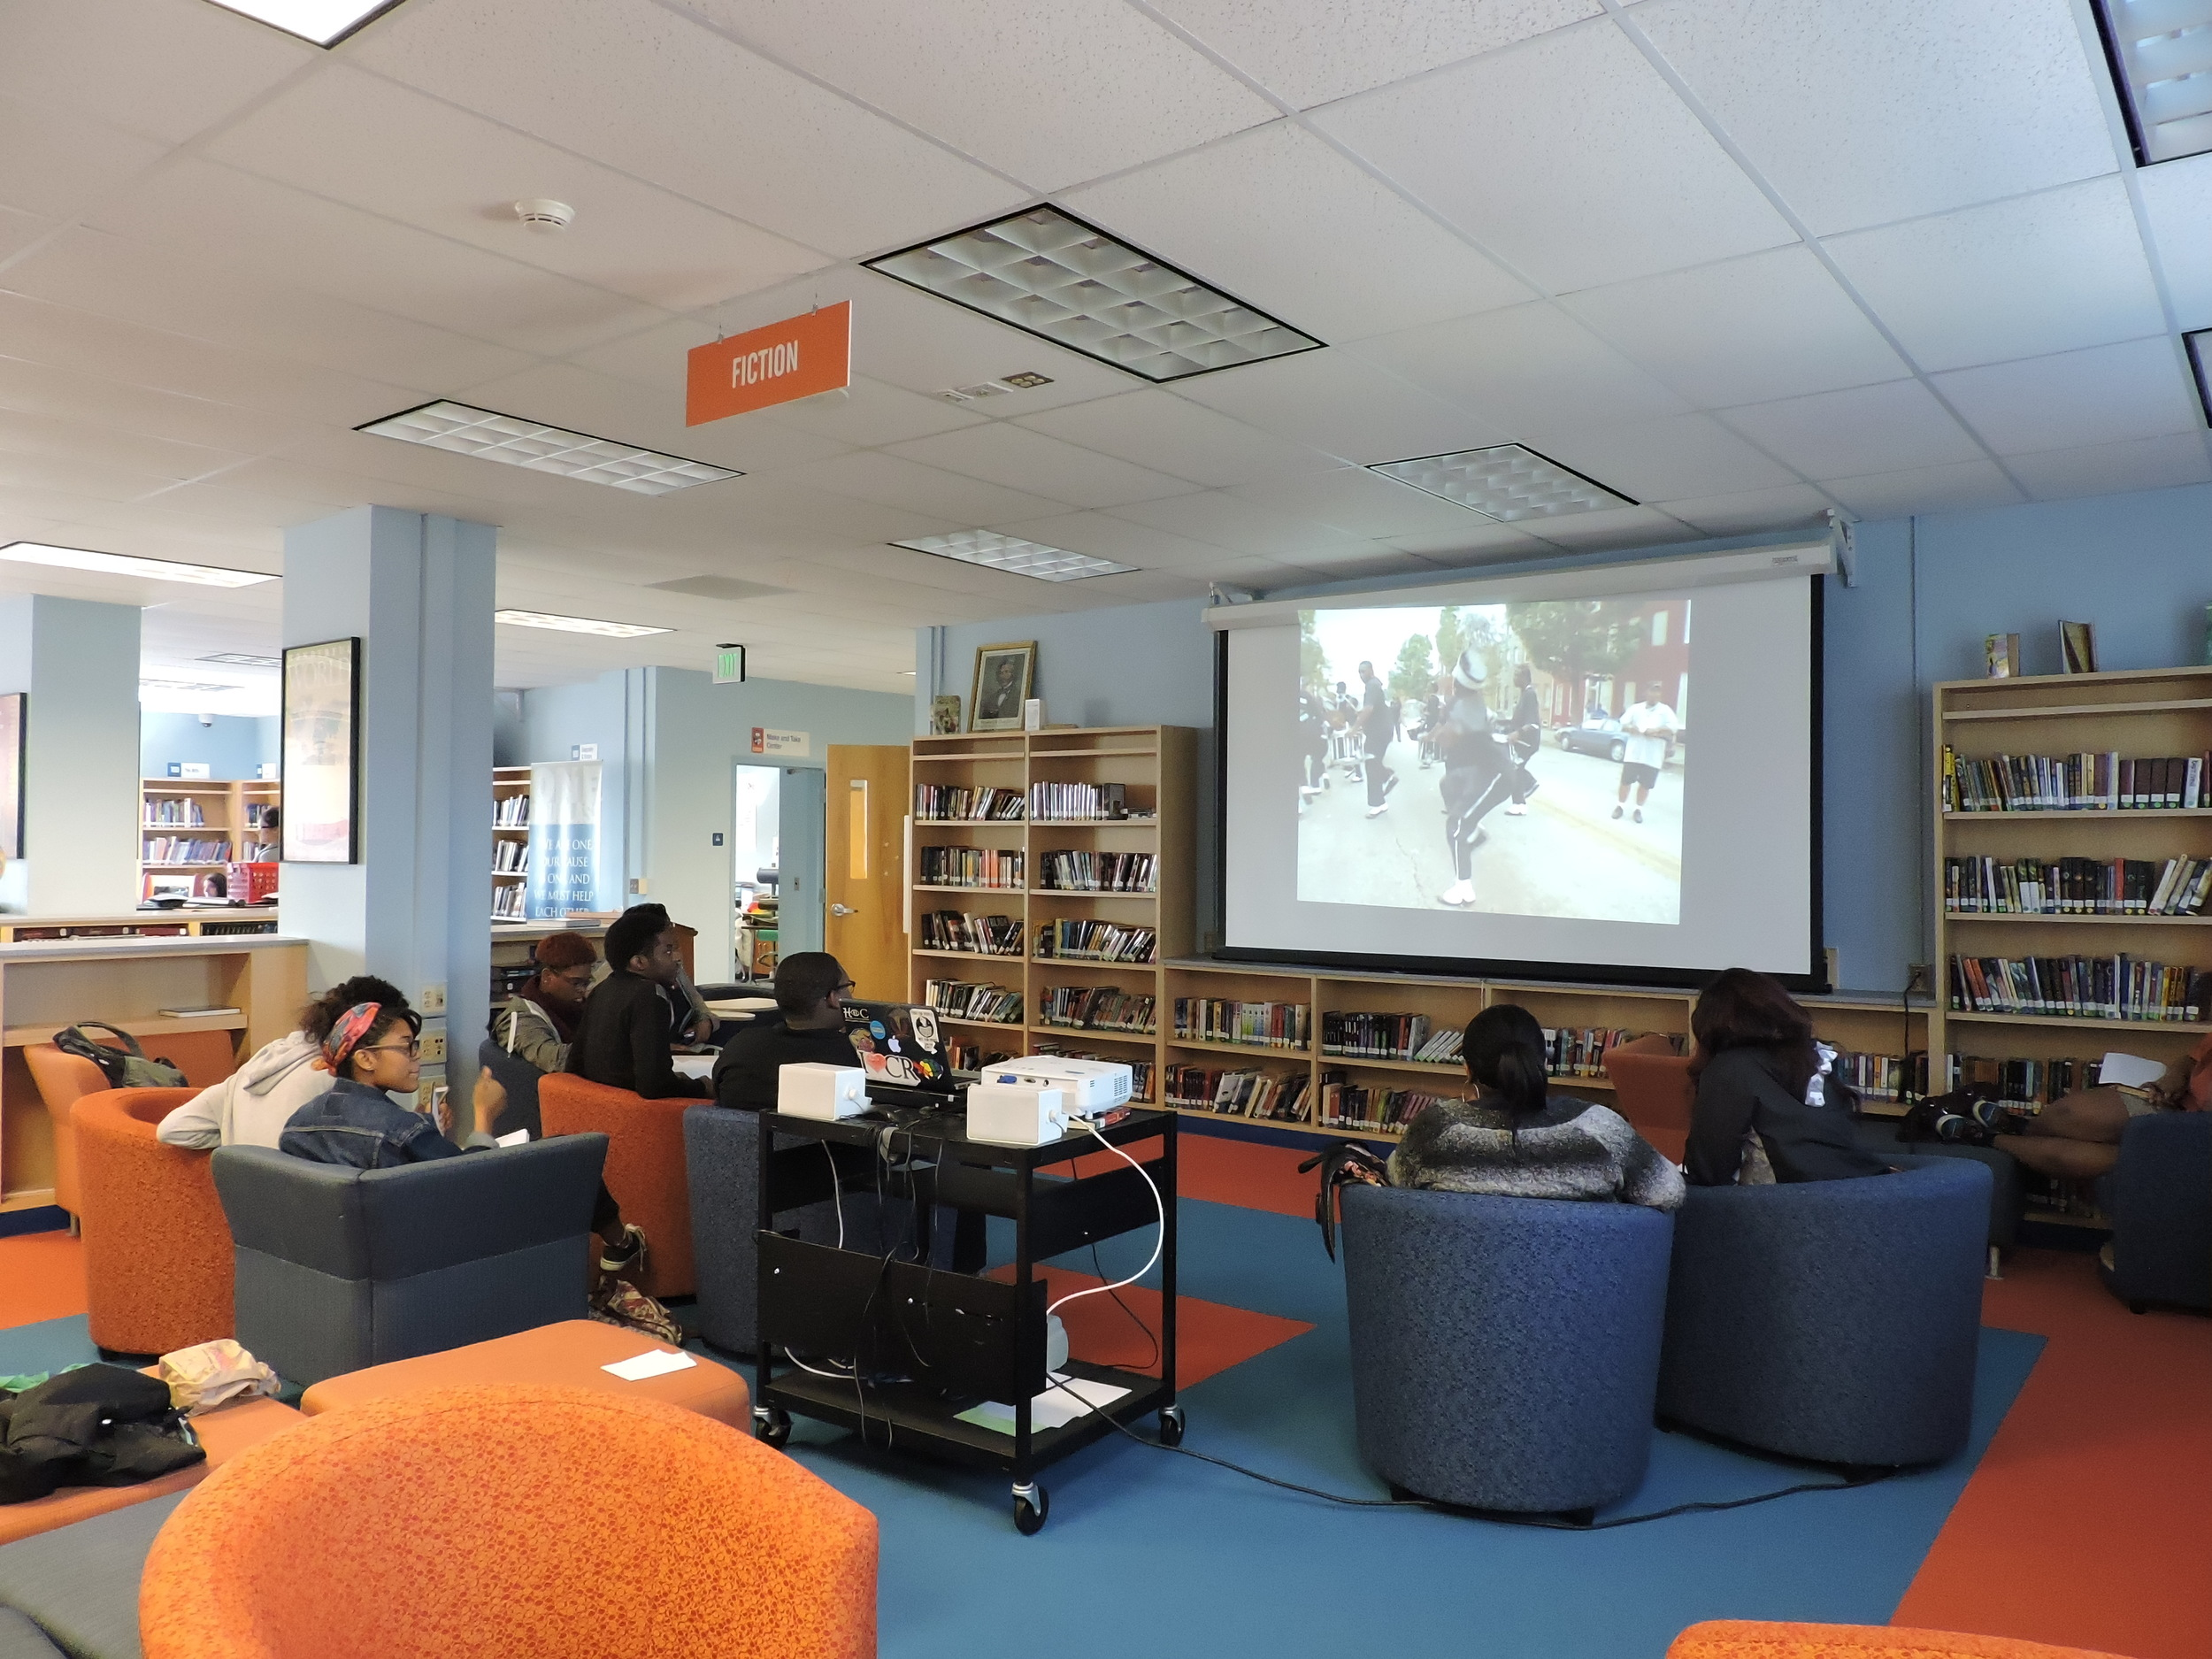 """Students watching the documentary """"Boys of Baraka"""" based on a group of students from Baltimore who studied abroad in Kenya, Africa in 2005."""